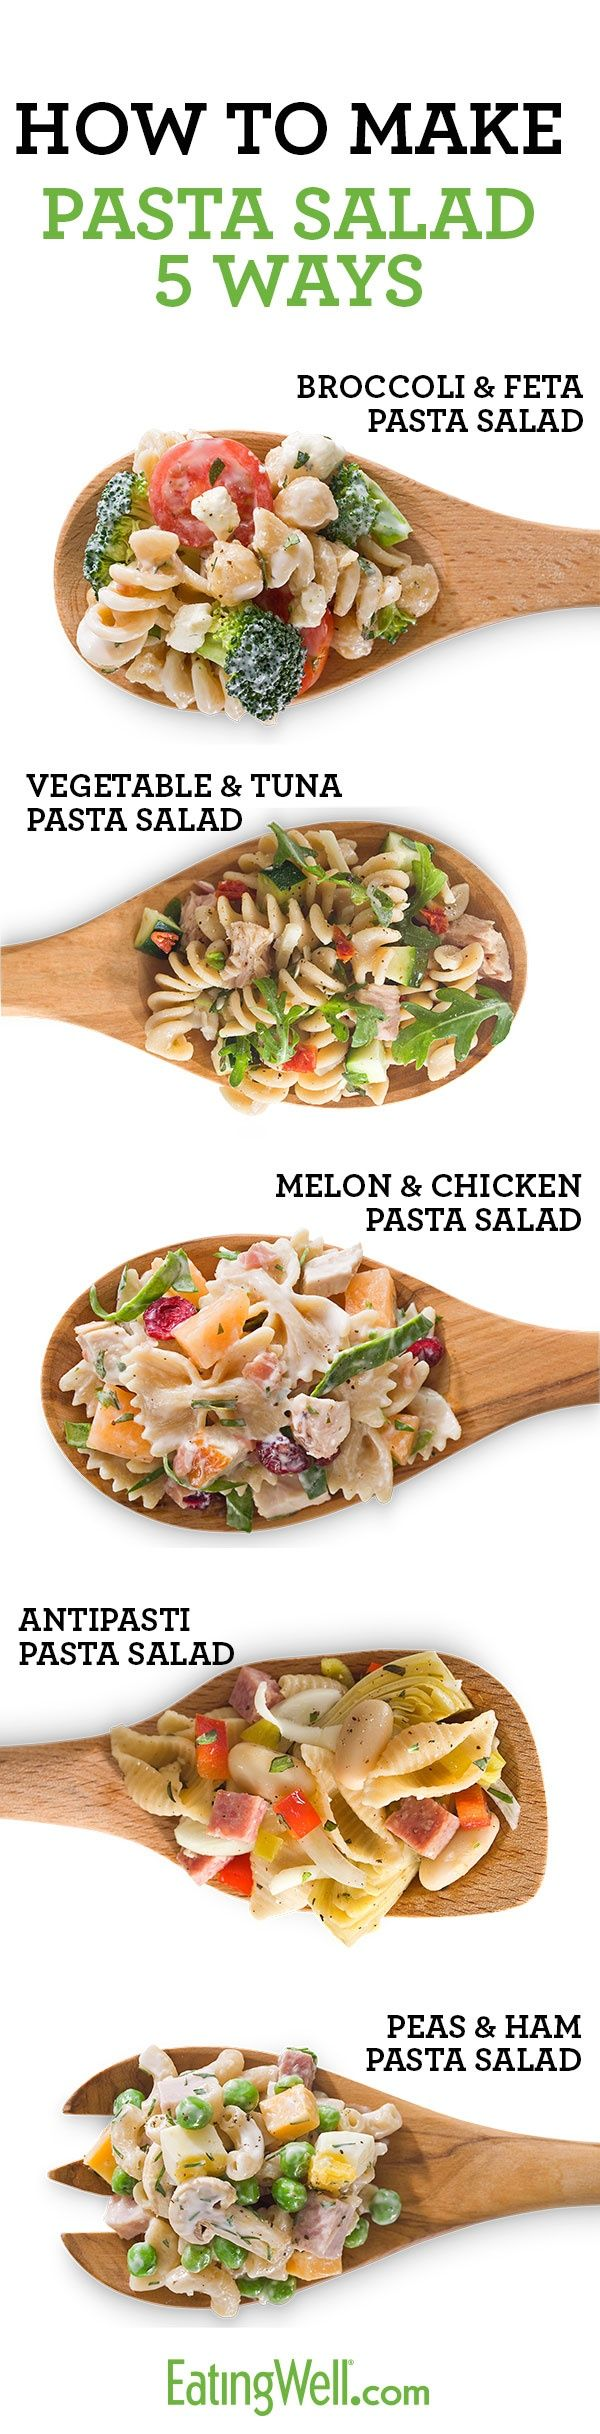 How to Make Pasta Salad in a variety of ways with fresh, healthy ingredients